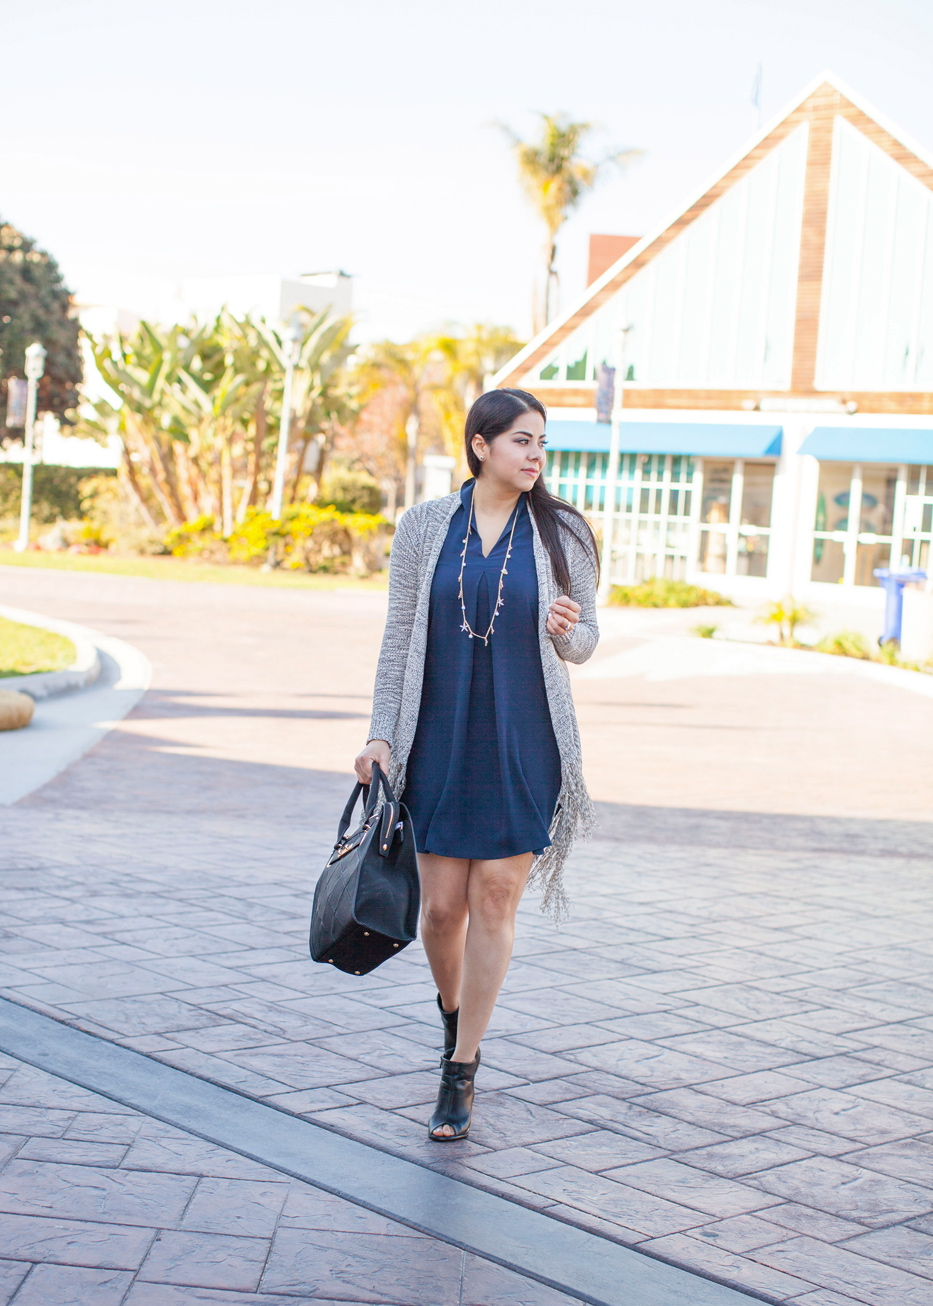 San Diego Street Style, so cal fashion blogger, so cal style